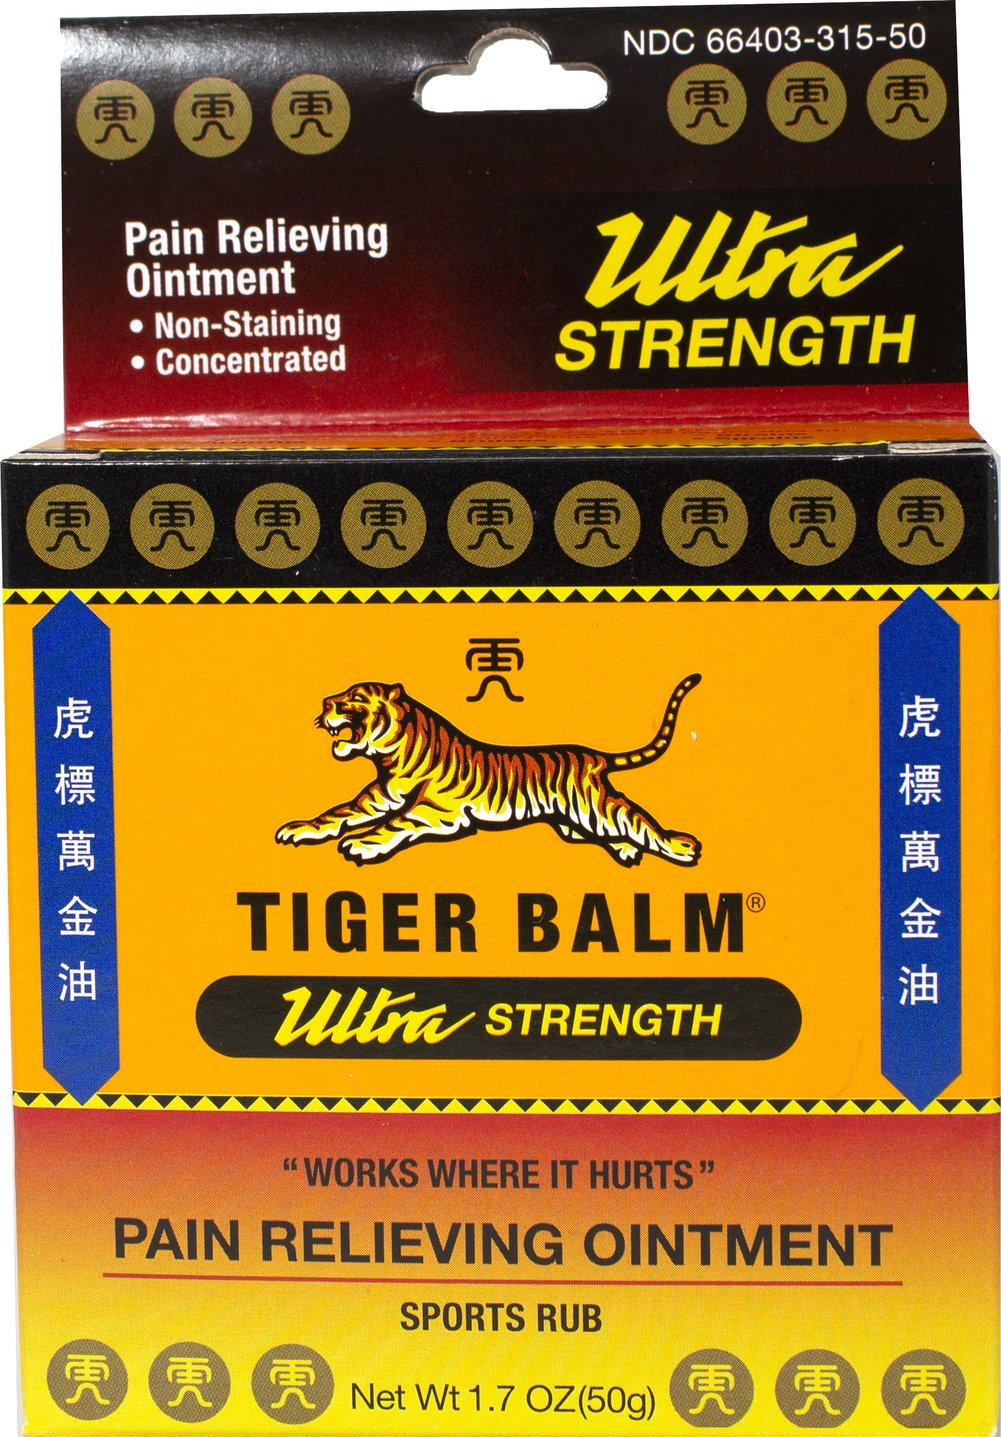 "Tiger Balm® Ultra Strength <p><strong>From the Manufacturer's Label: </strong></p><p>Sports Rub for Sore Muscles & Over-exertion</p><p>Non-Staining</p><p>TIGER BALM® has been used for nearly 100 years and sold throughout the world.**  TIGER BALM® ""Works where it hurts.""**</p> 1.7 oz Ointment  $9.99"